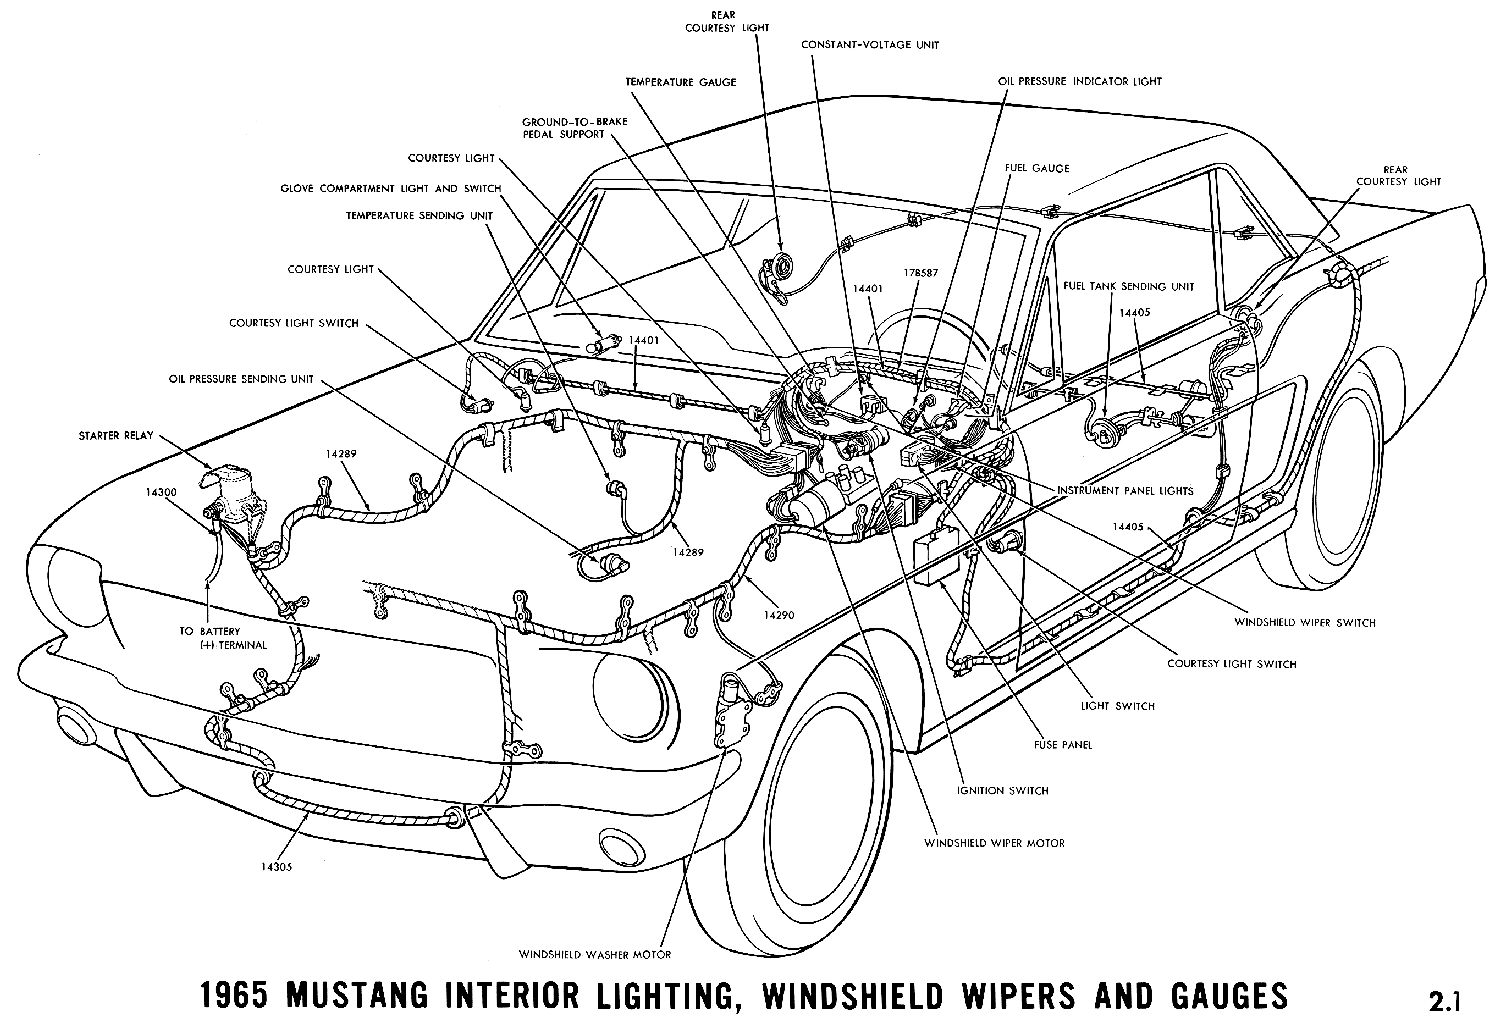 1965 Mustang Wiring Schematic Diagrams Best Mach 460 Diagram Average Joe Restoration Charging System Interior